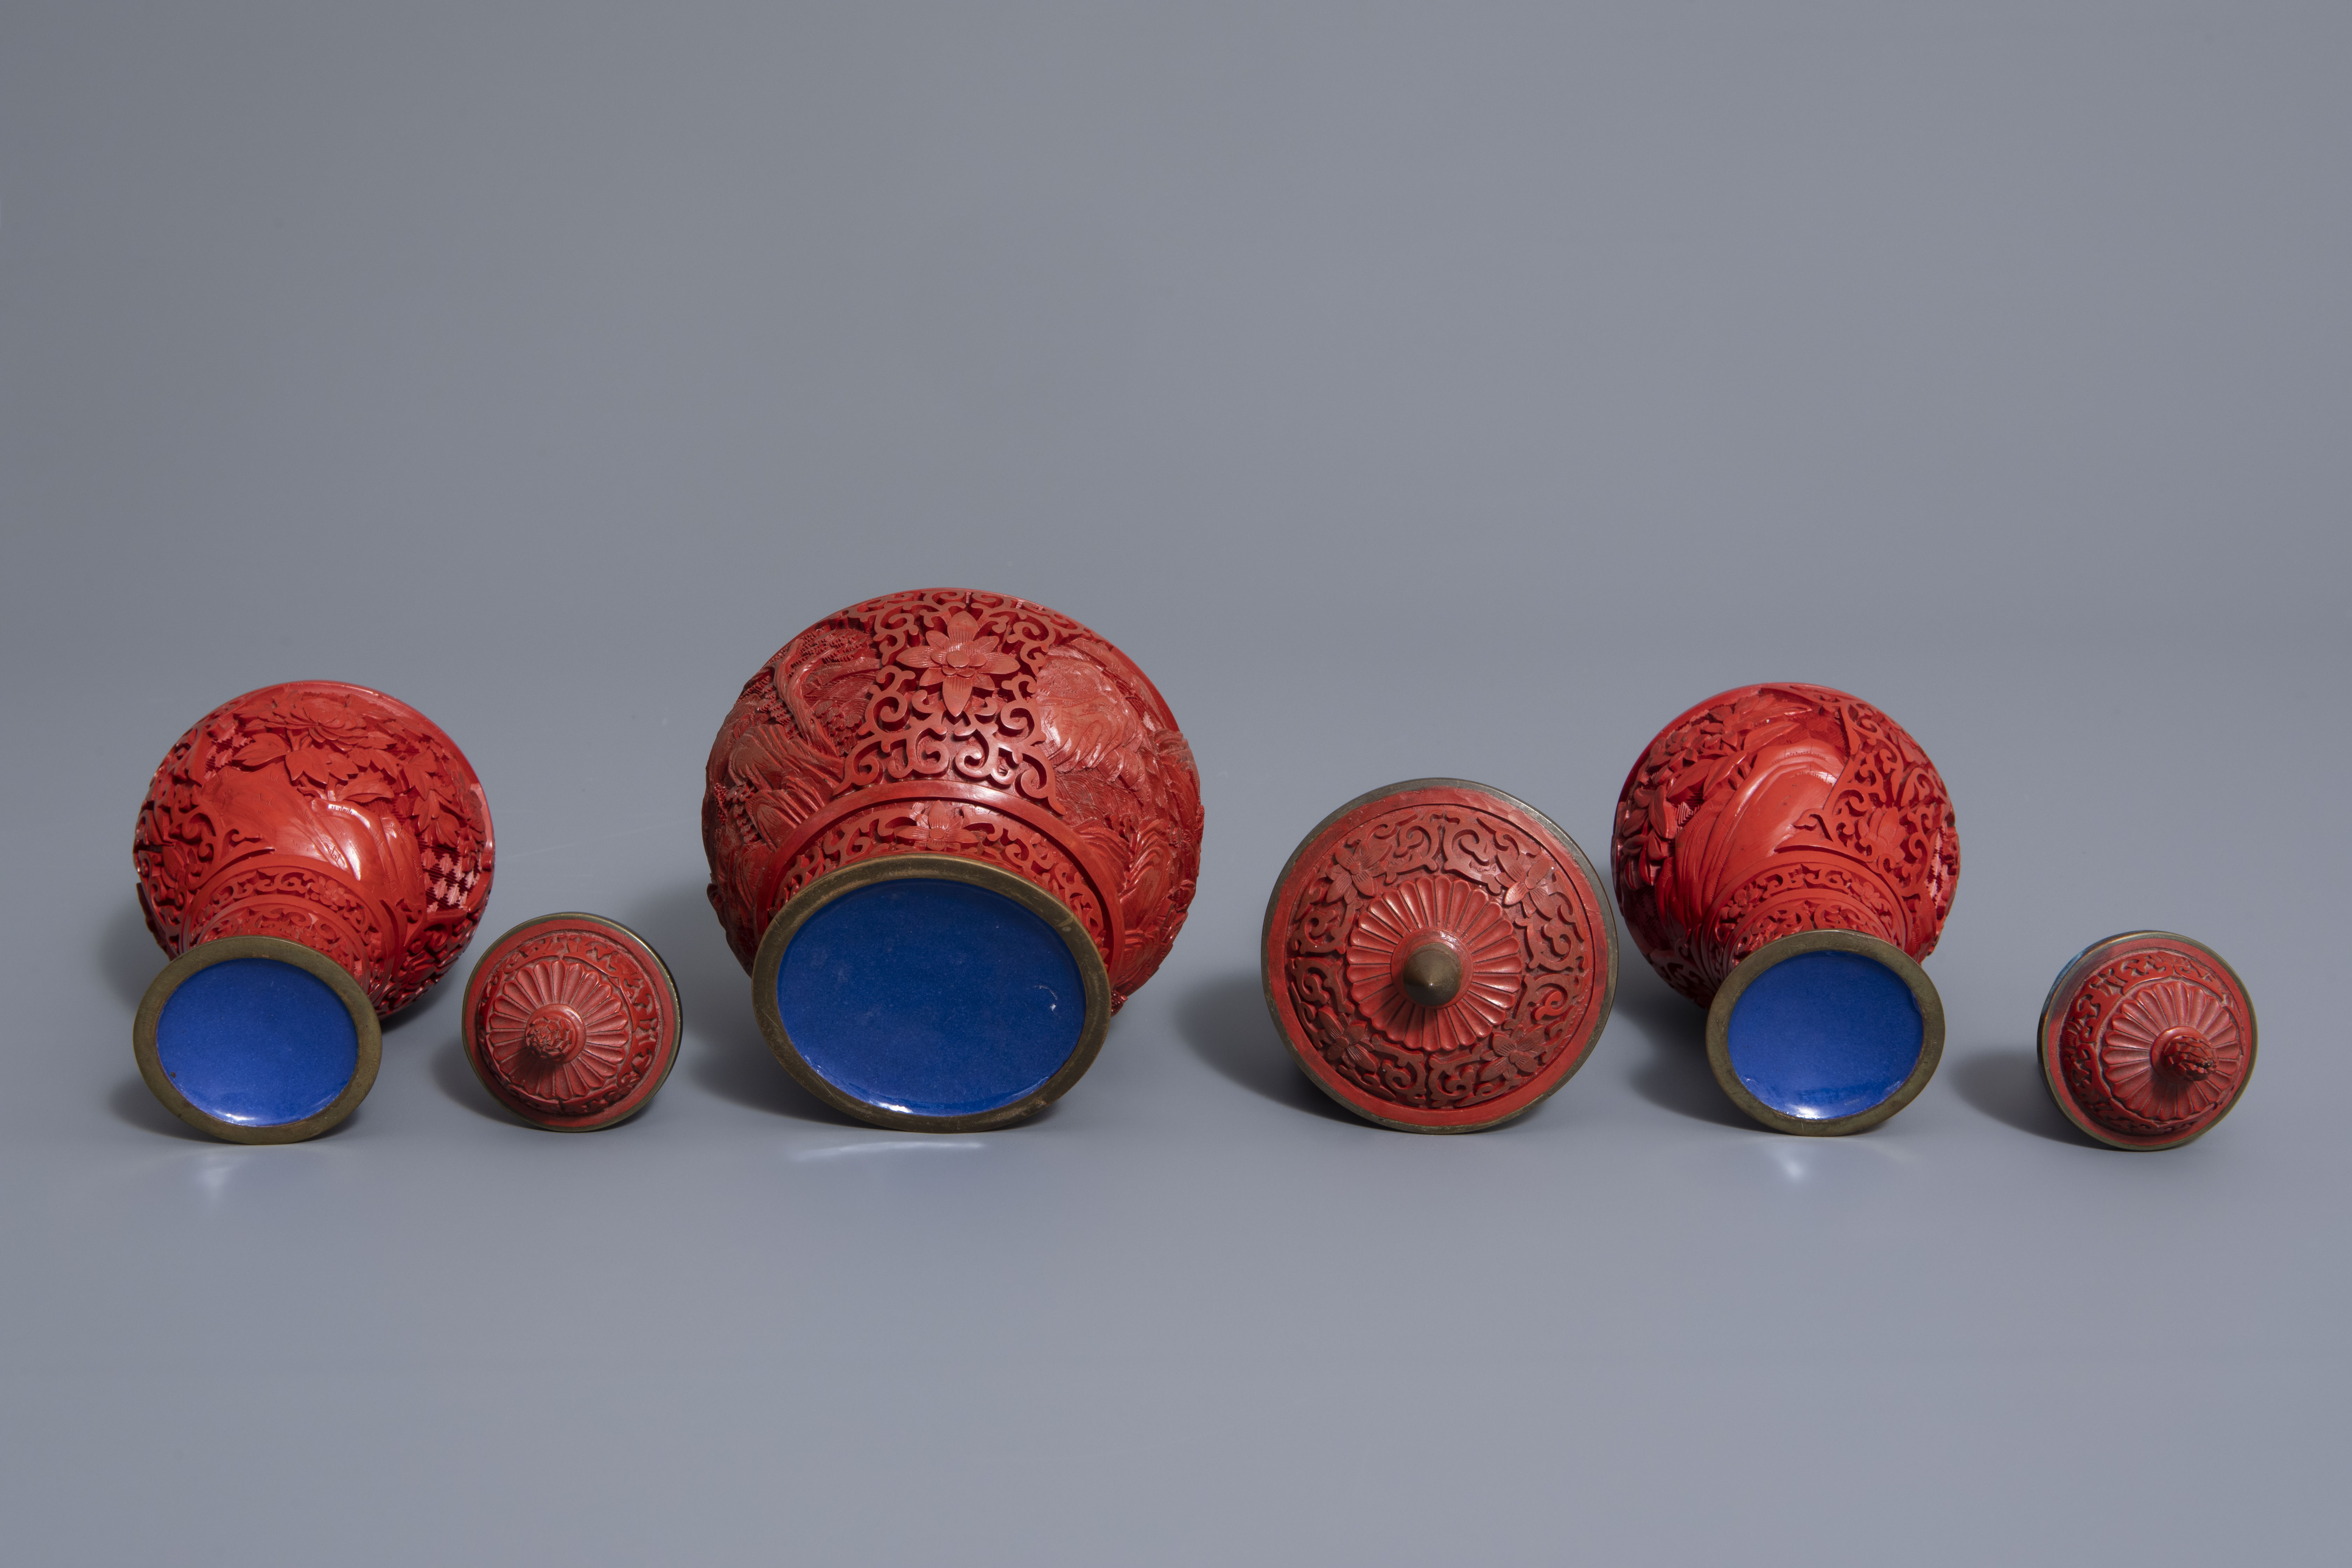 A Chinese tea block, cloisonné teapot, wall vase, bamboo brush pot & 3 red lacquer vases, 20th C. - Image 7 of 16